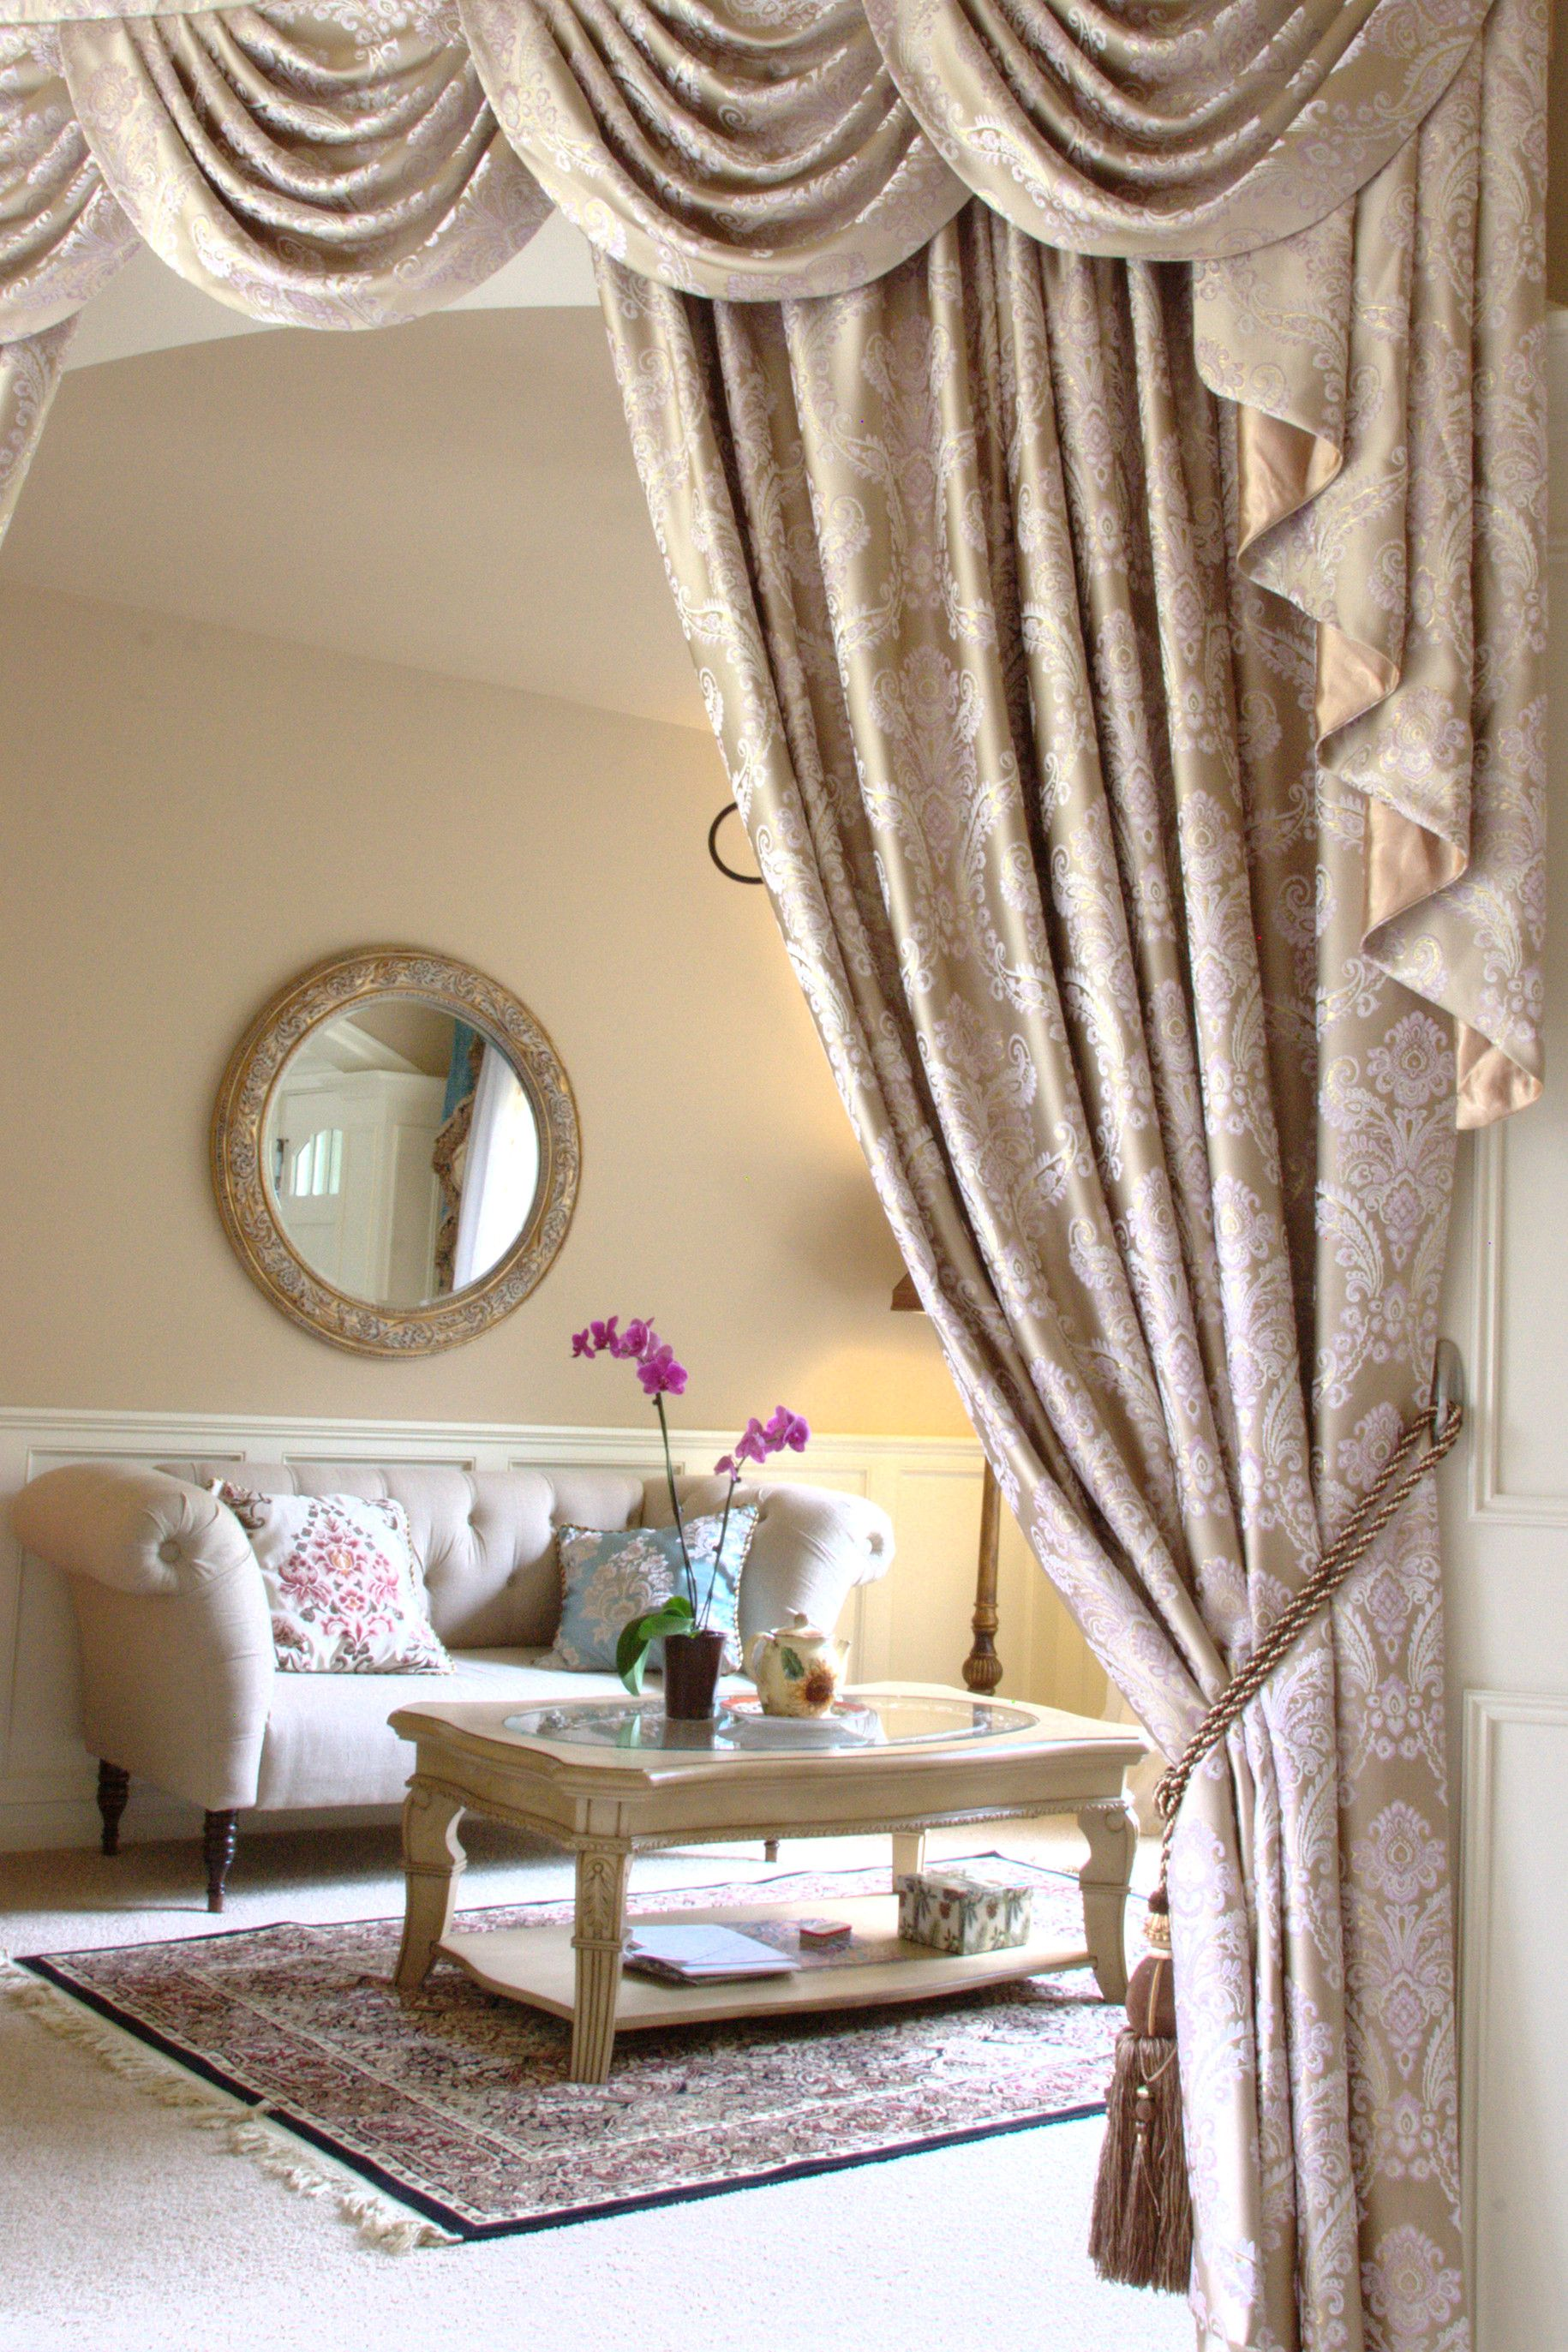 Custom Made Swag Valance Curtains The Fabric Is Gold Ivy